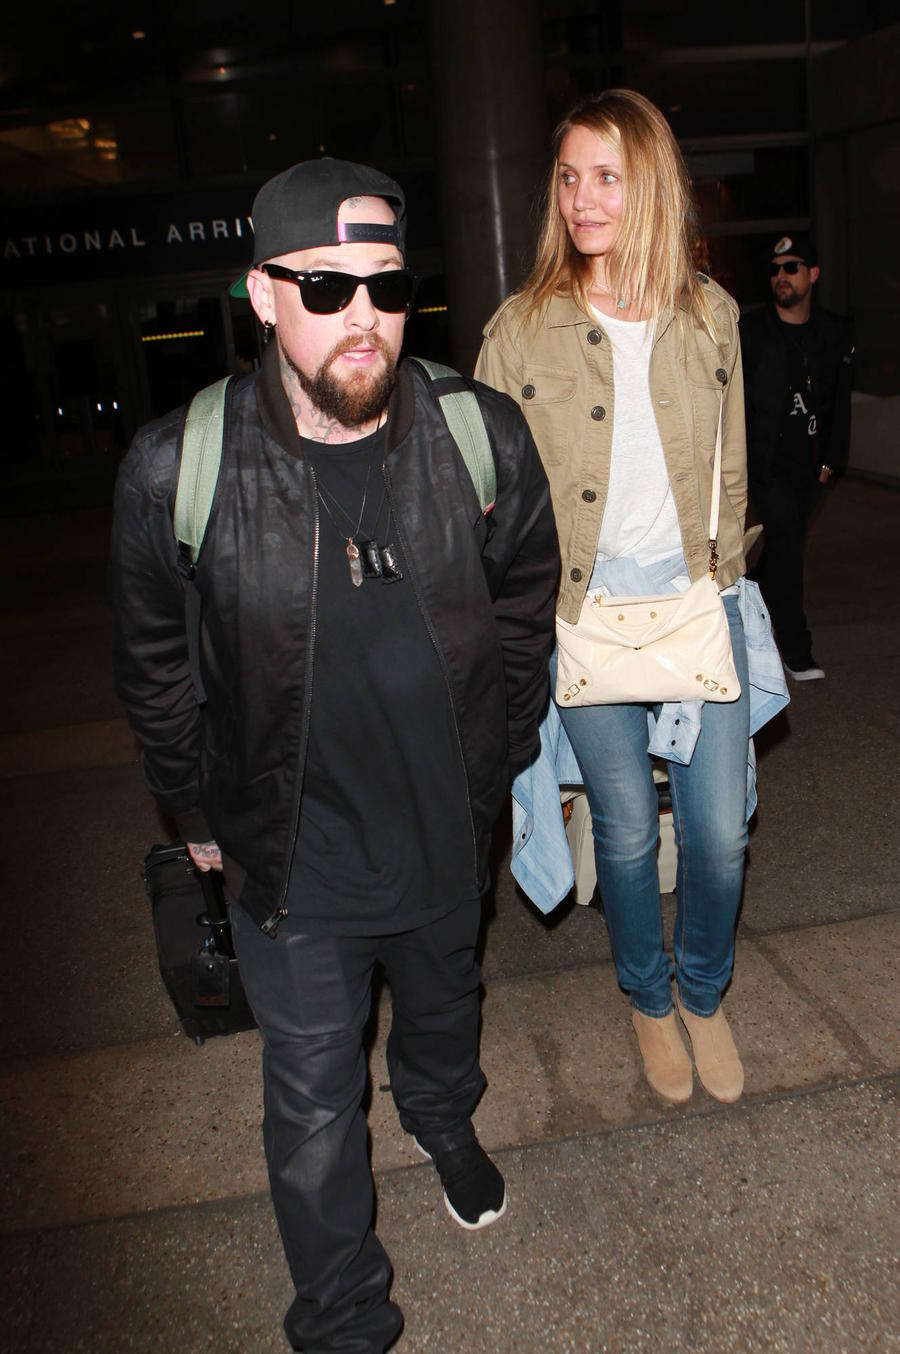 Cameron Diaz 'Settled' On Family Expansion Plans With Husband Benji Madden - Report